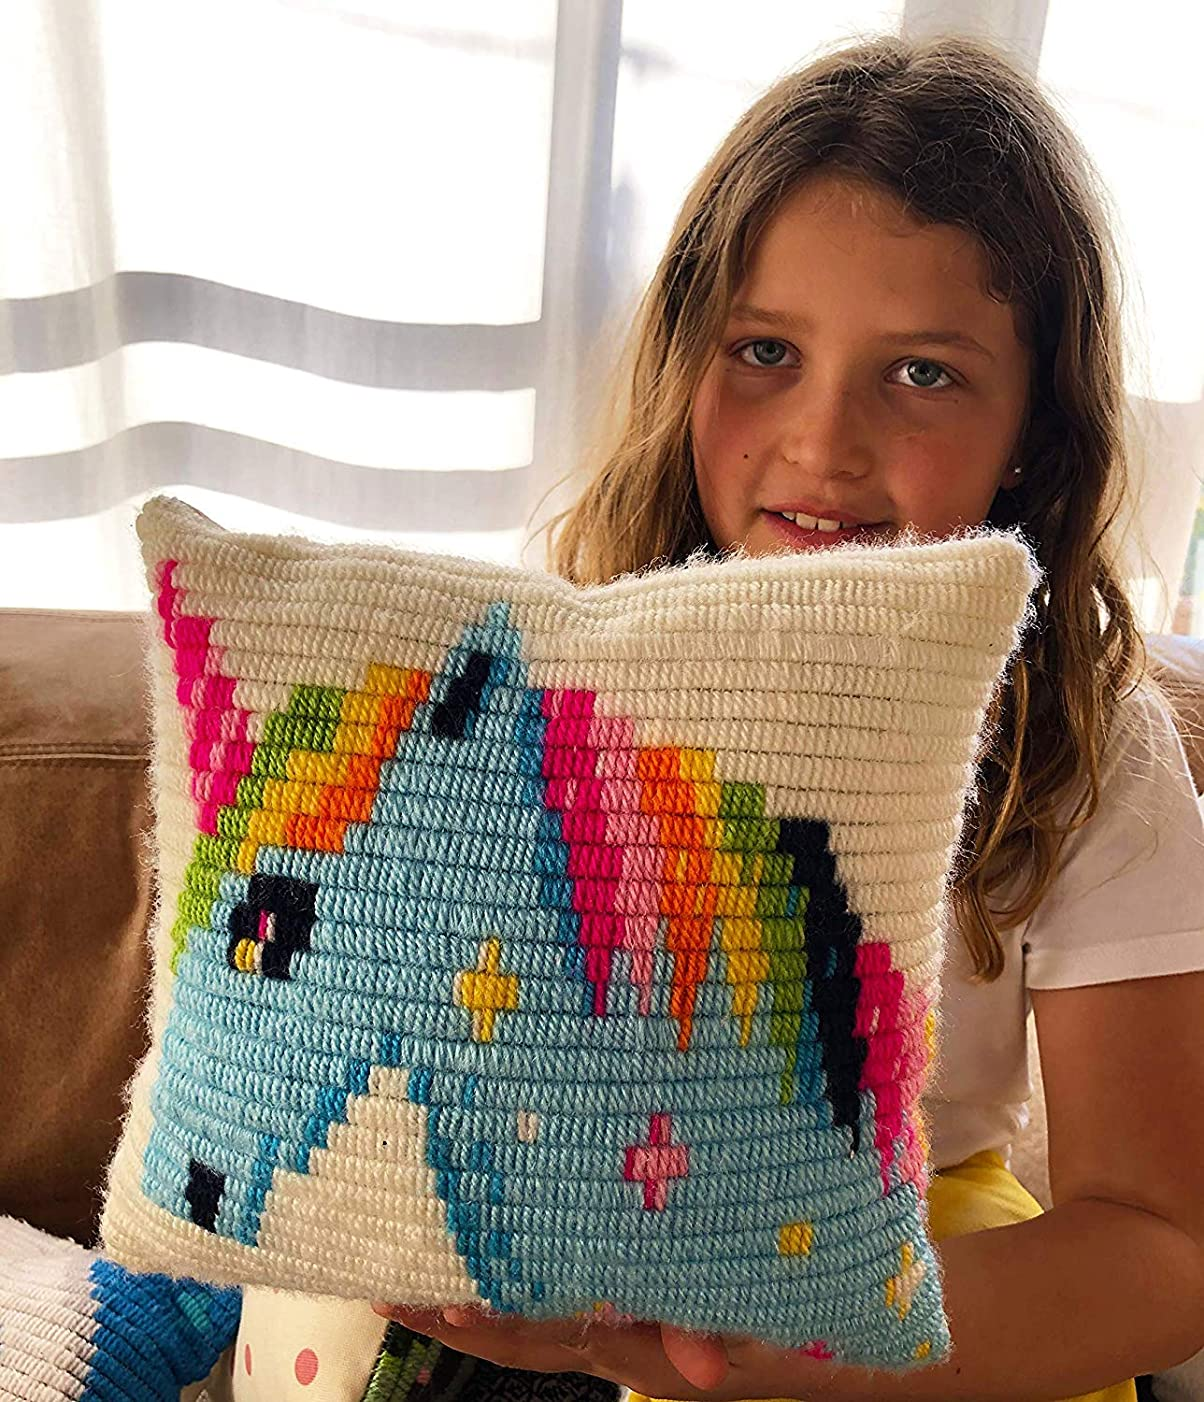 Original SOZO Embroidery/Needlepoint Kit for Kids and Beginners | Unicorn Design | an Ideal Gift for Unicorn Fans | Complete Kit Contains Everything You Need to Create a Unicorn Pillow